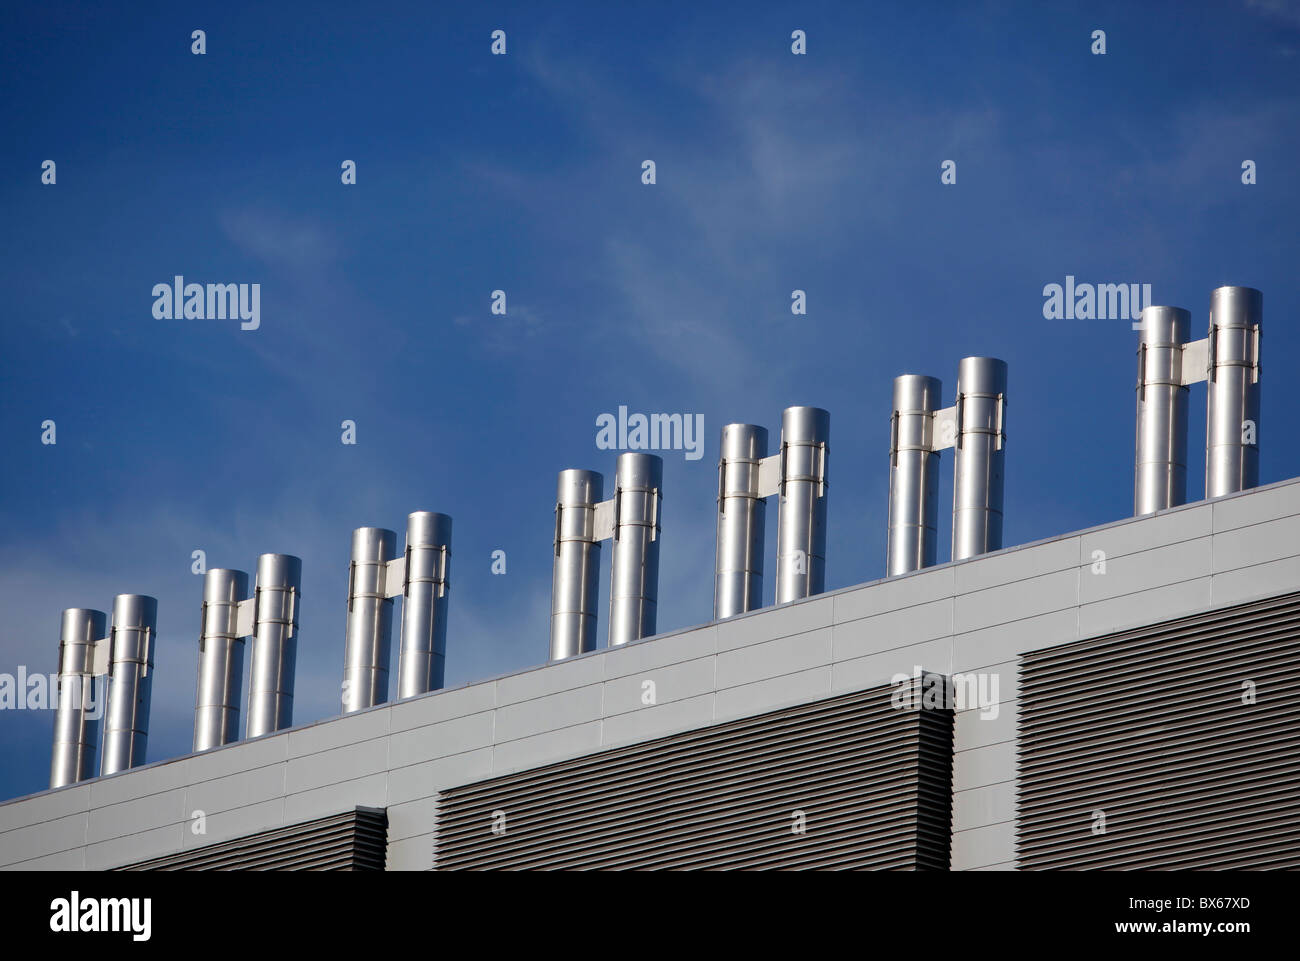 stainless steel vents on top of an building - Stock Image